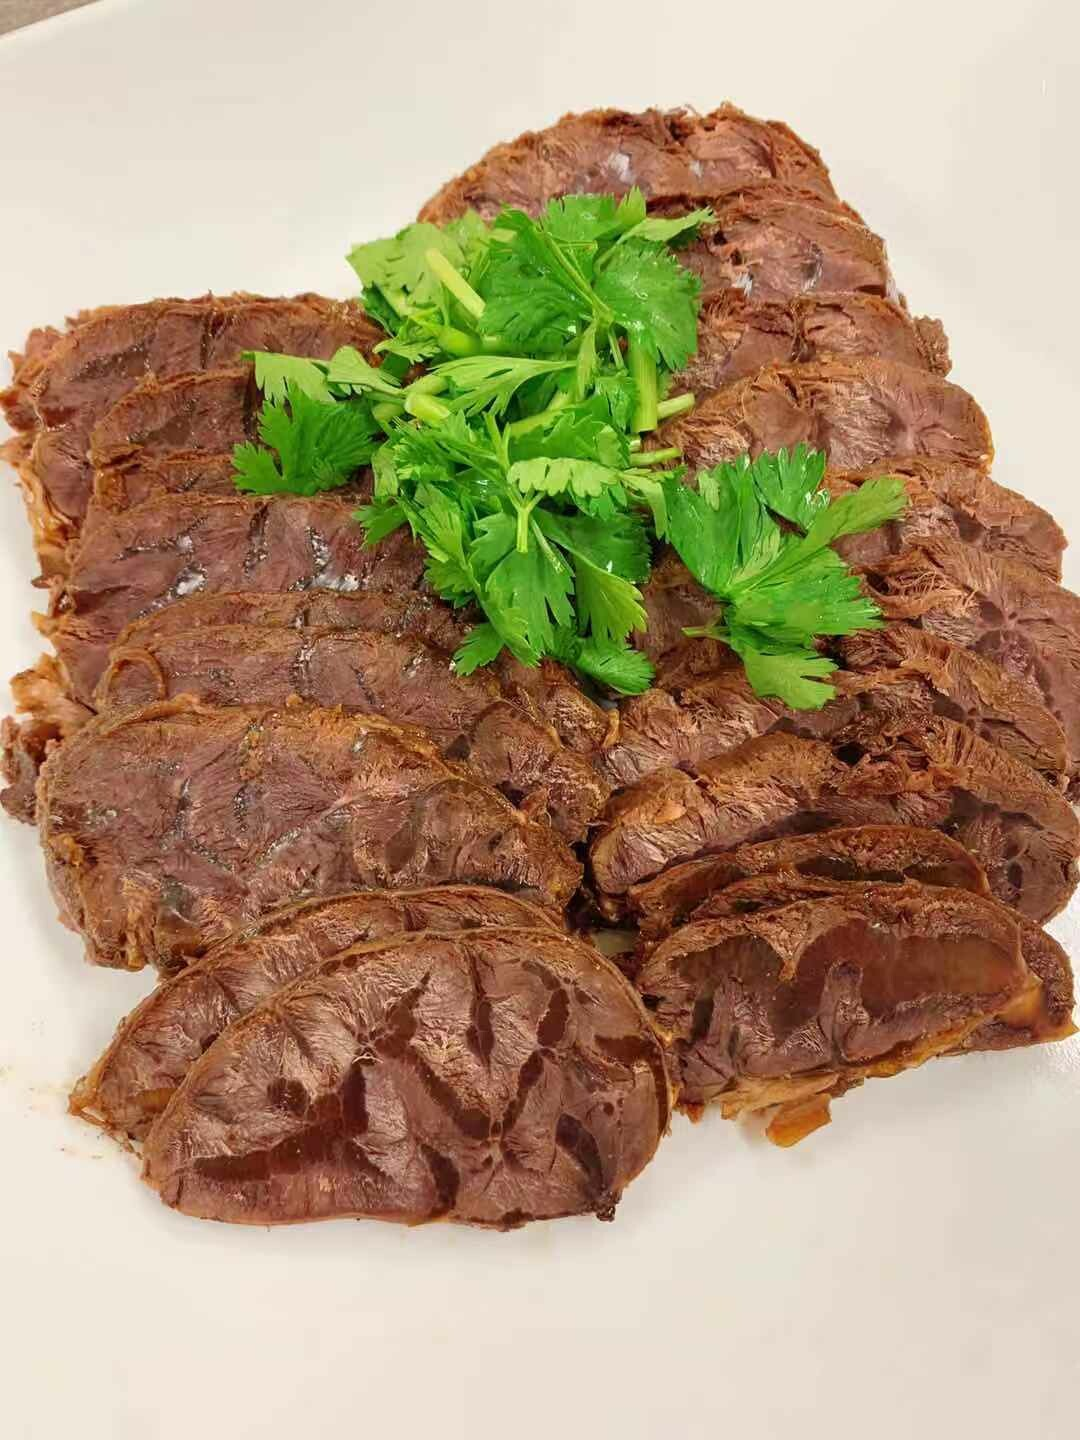 【又一村】Sauced Beef 卤牛肉(Closed Monday& Tuesday)